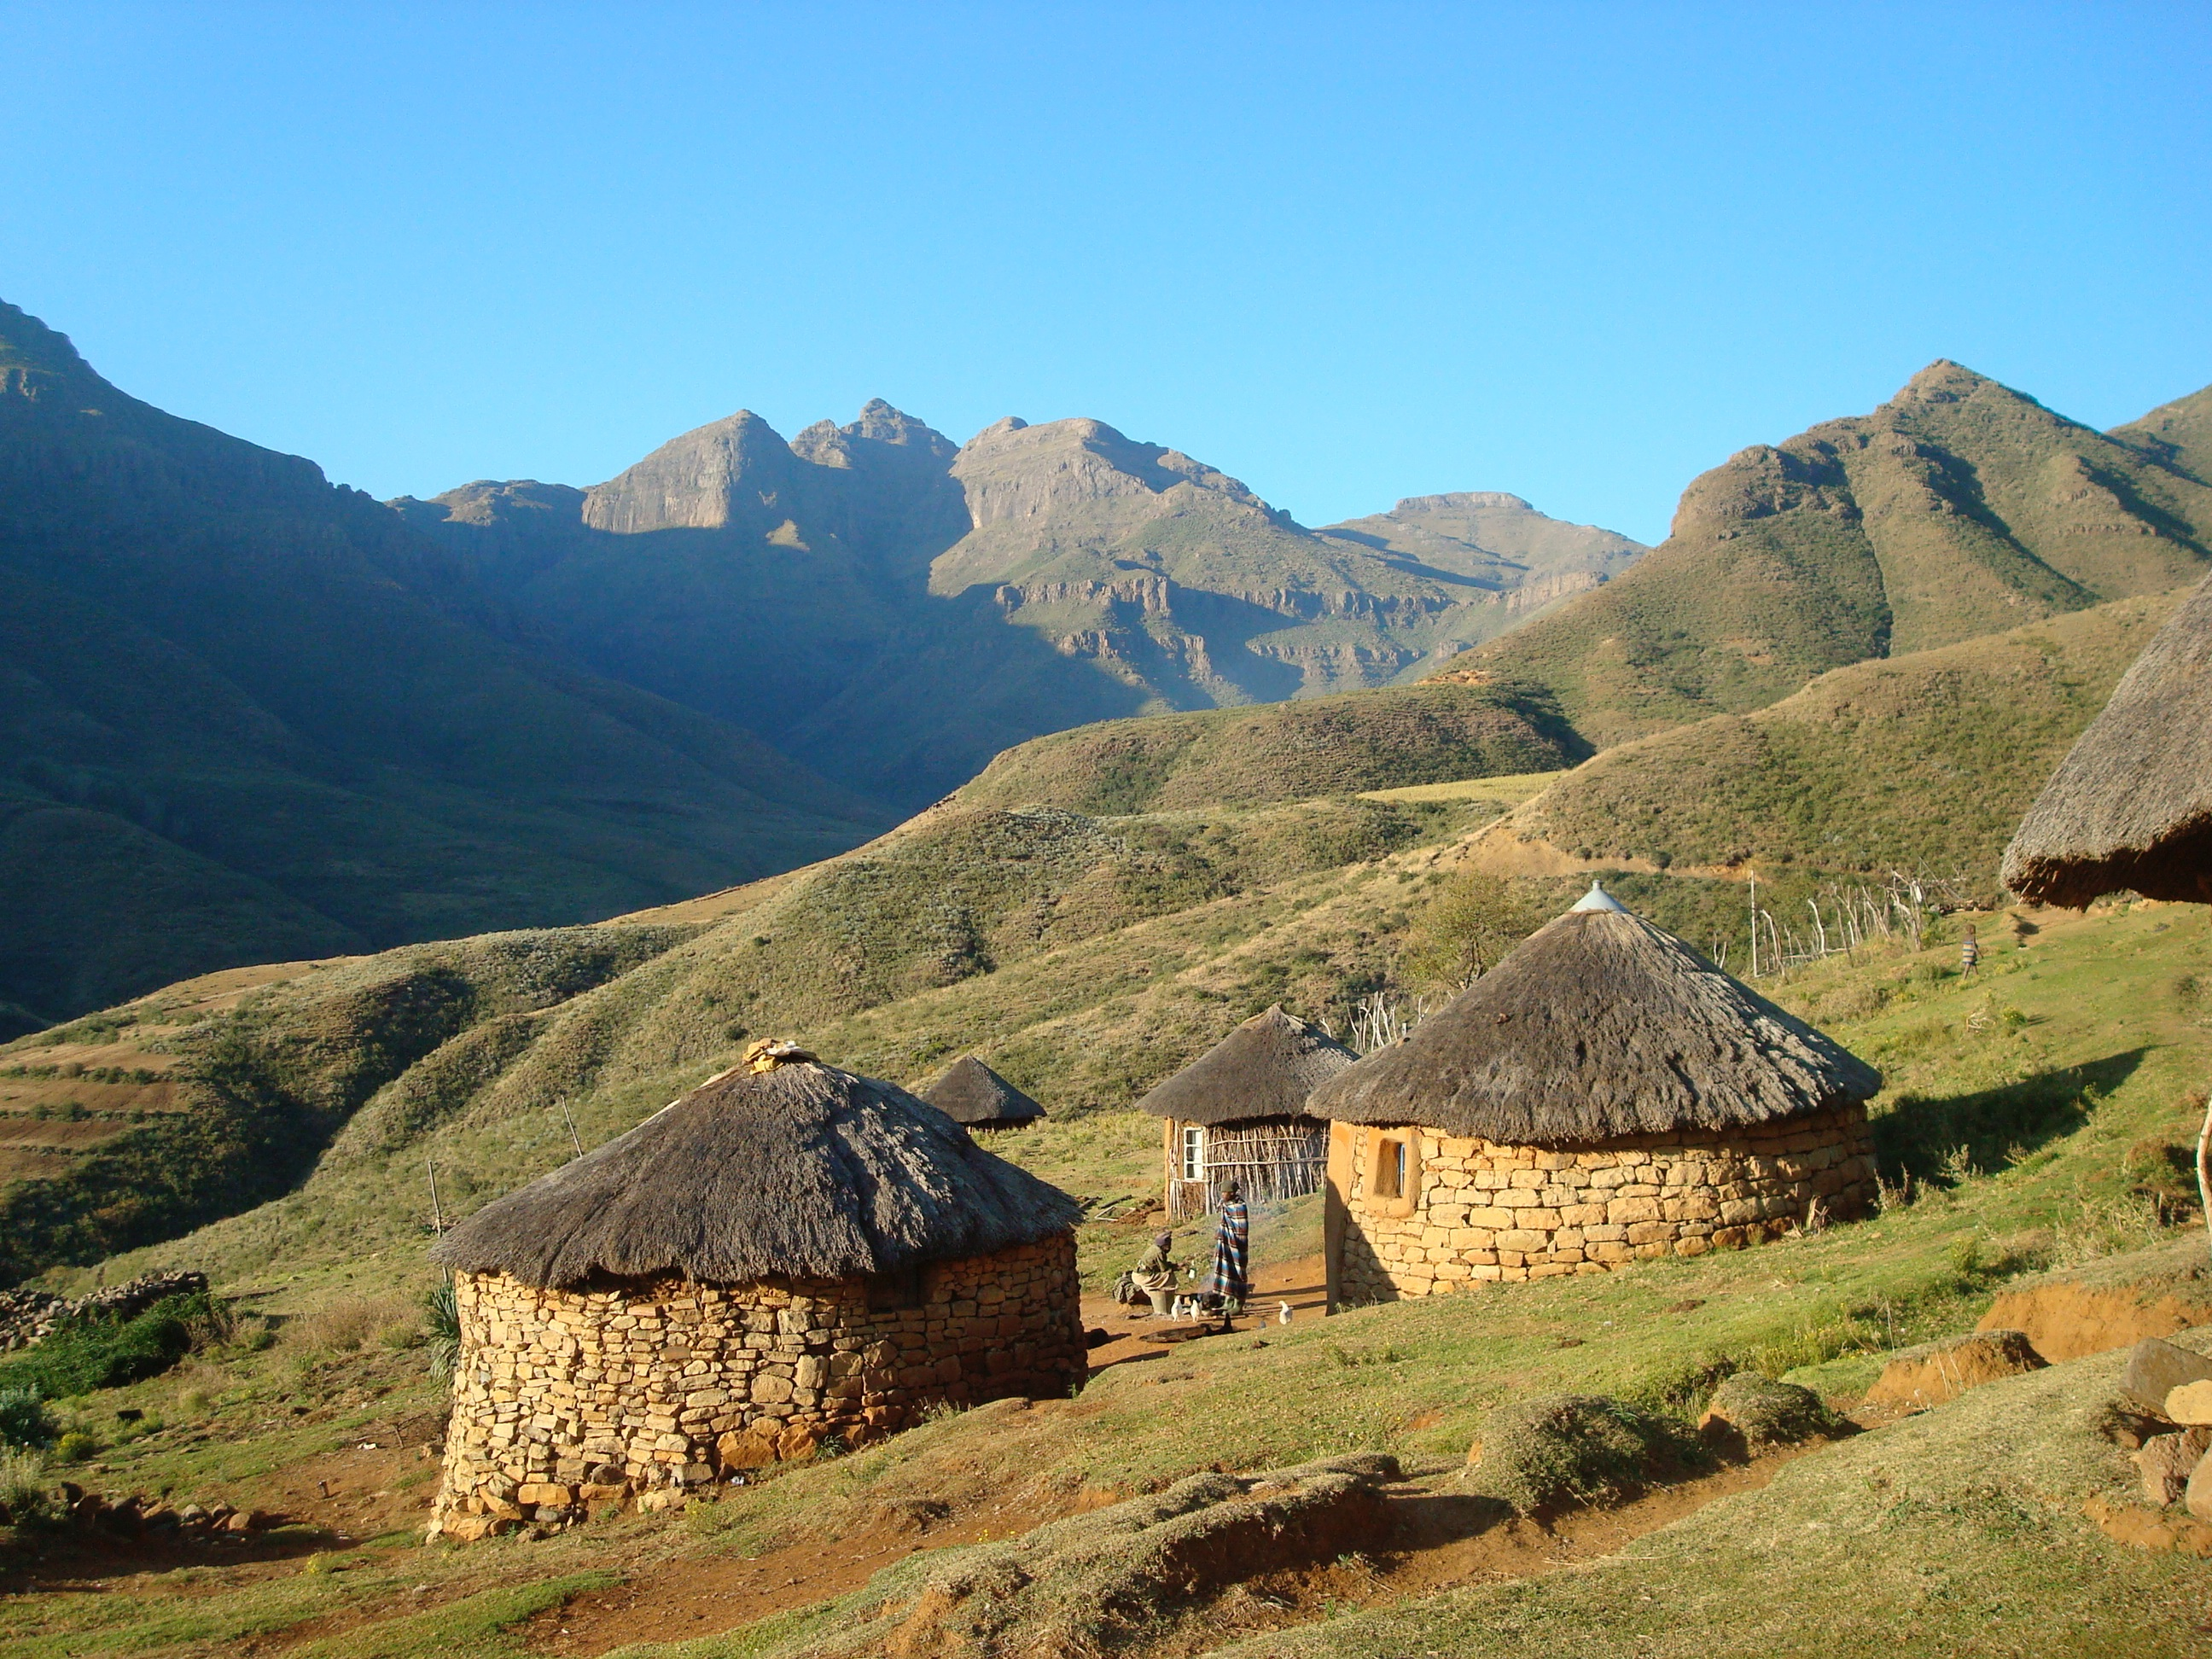 File:View of Lesotho.jpg - Wikimedia Commons